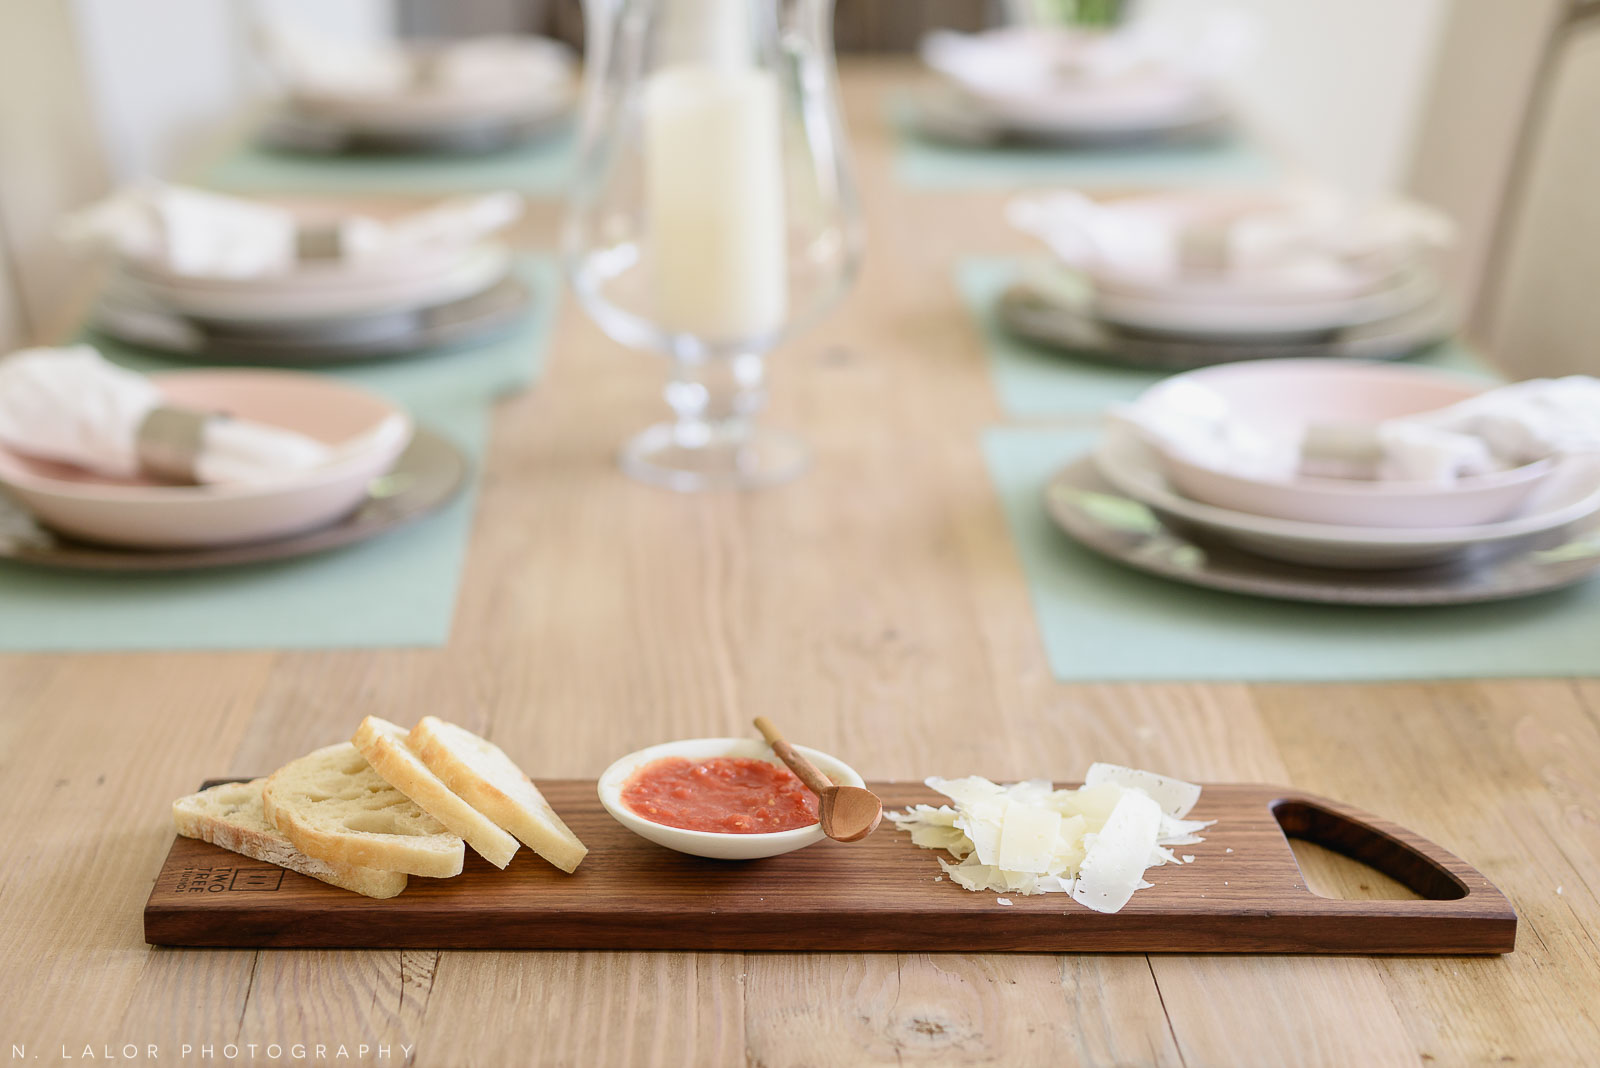 Perfect for entertaining! Local Small Business photoshoot for METTA10 by N. Lalor Photography. Westport, Connecticut.